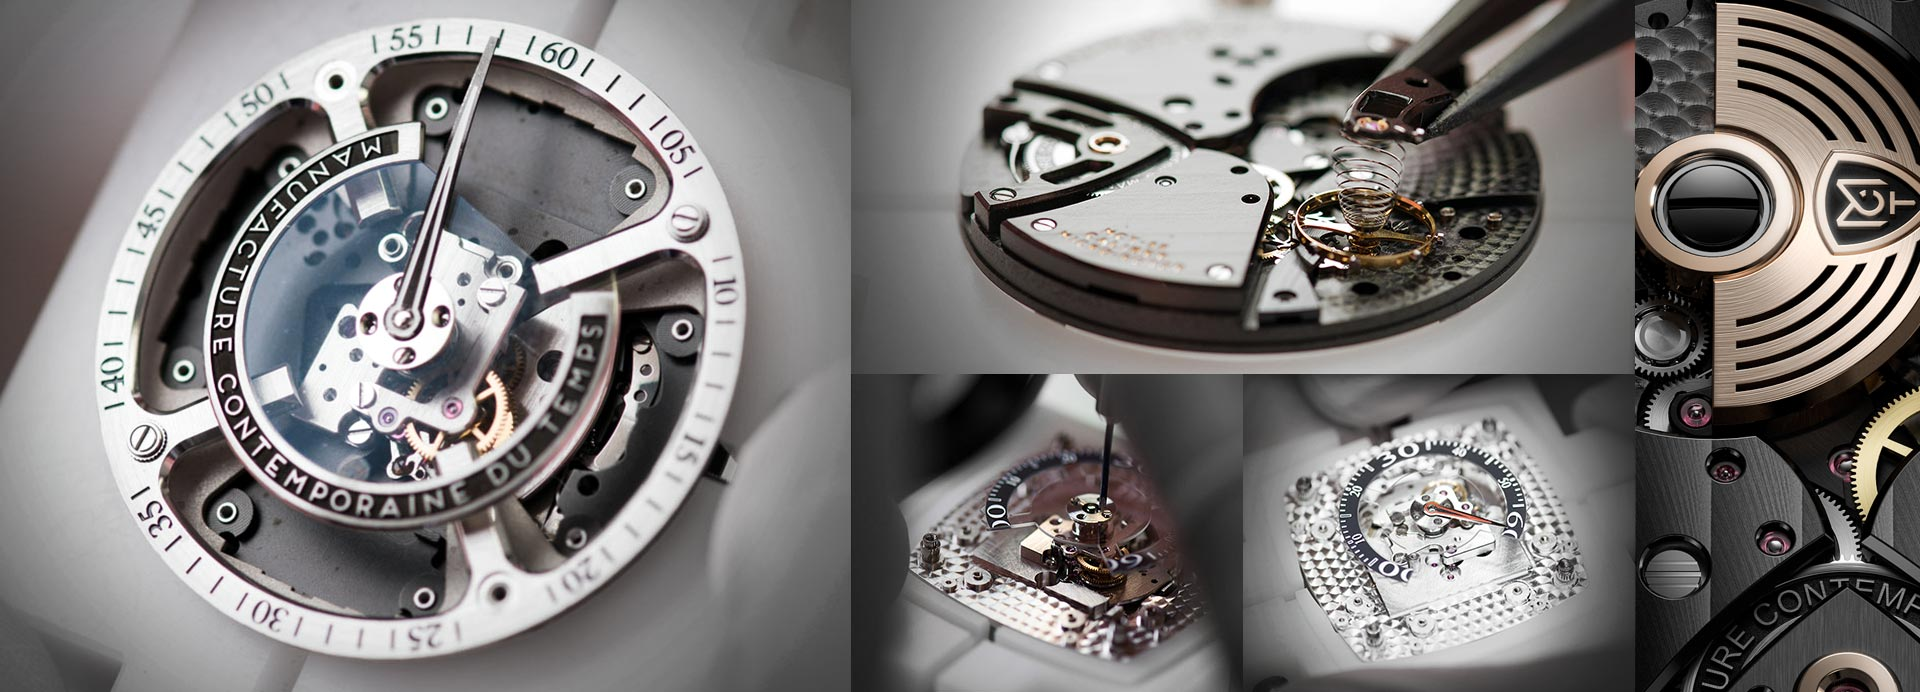 MCT Watches - Manufacture